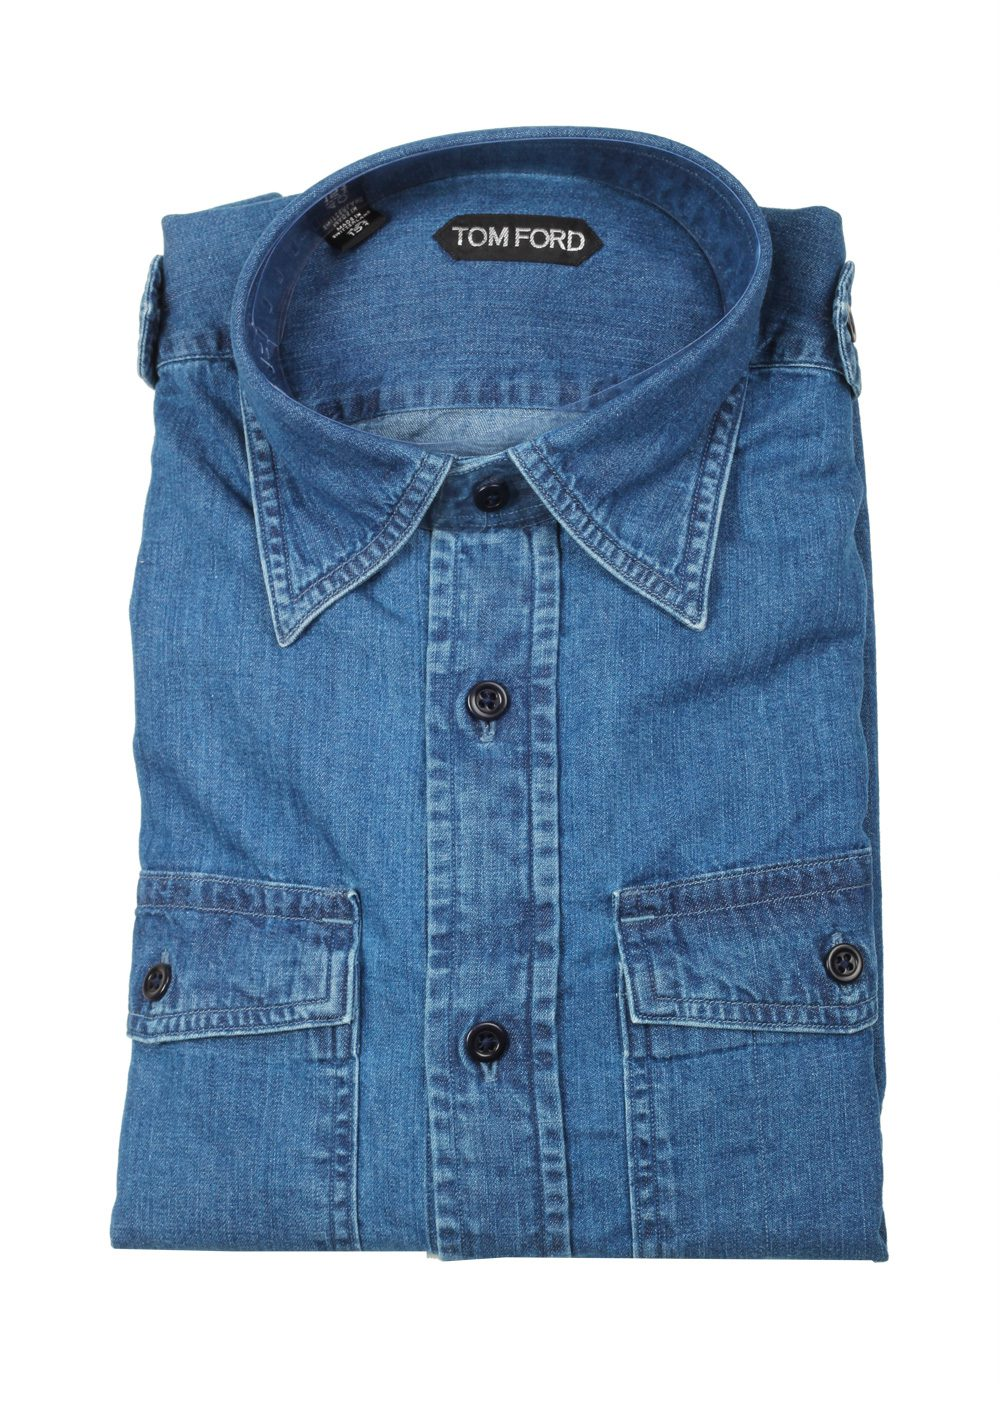 TOM FORD Solid Blue Denim Western Casual Shirt Size 40 / 15,75 U.S. | Costume Limité